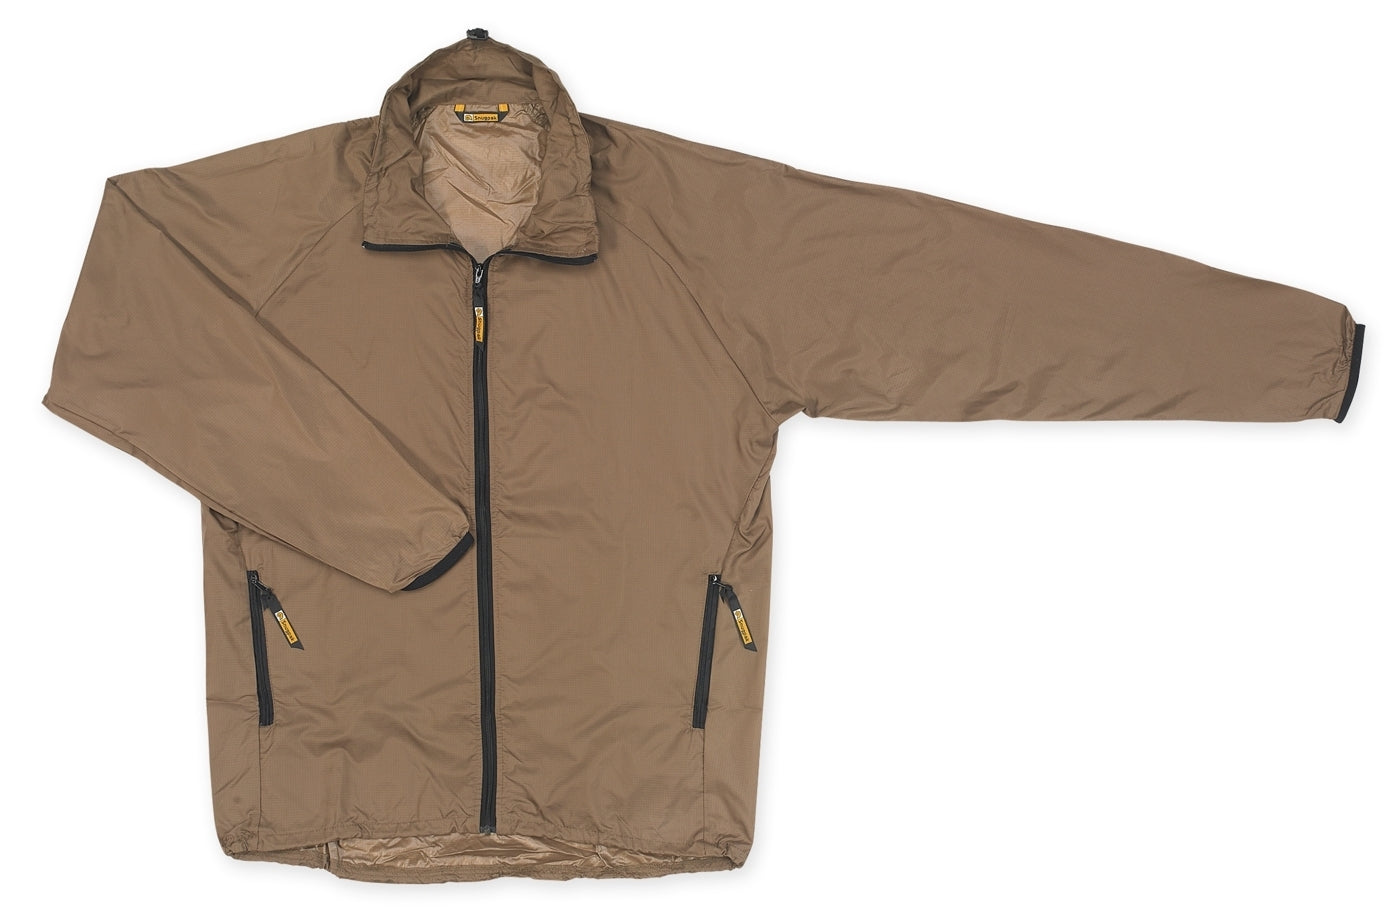 SnugPak Vapour Active Wind Top Jacket Coyote Thermal Materials